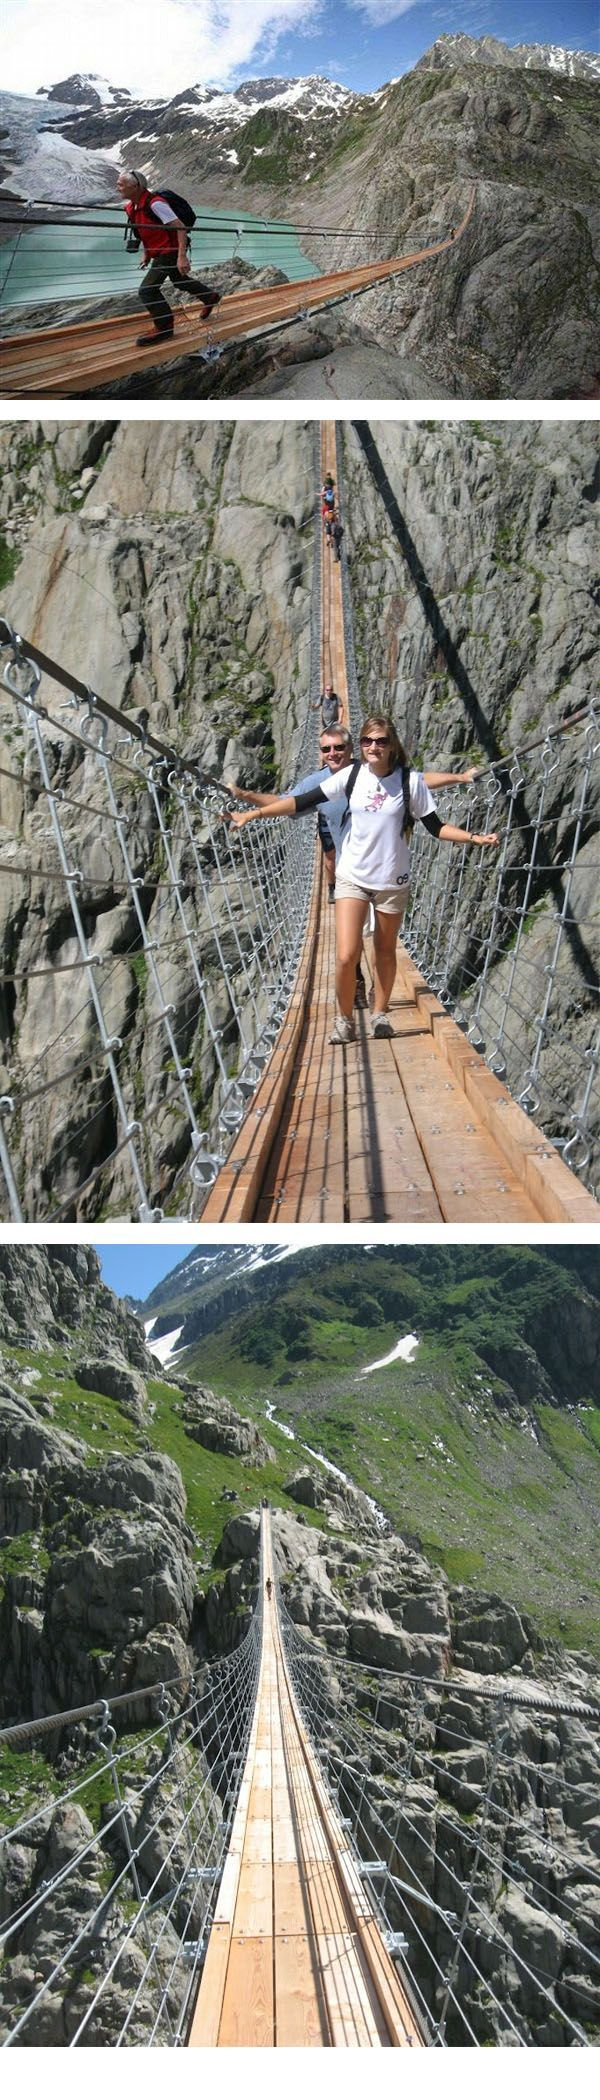 Trift Bridge is one of the most spectacular pedestrian suspension bridges of the Alps. It is 100 meters high and 170 meters long, and is poised above the region of the Trift Glacier.